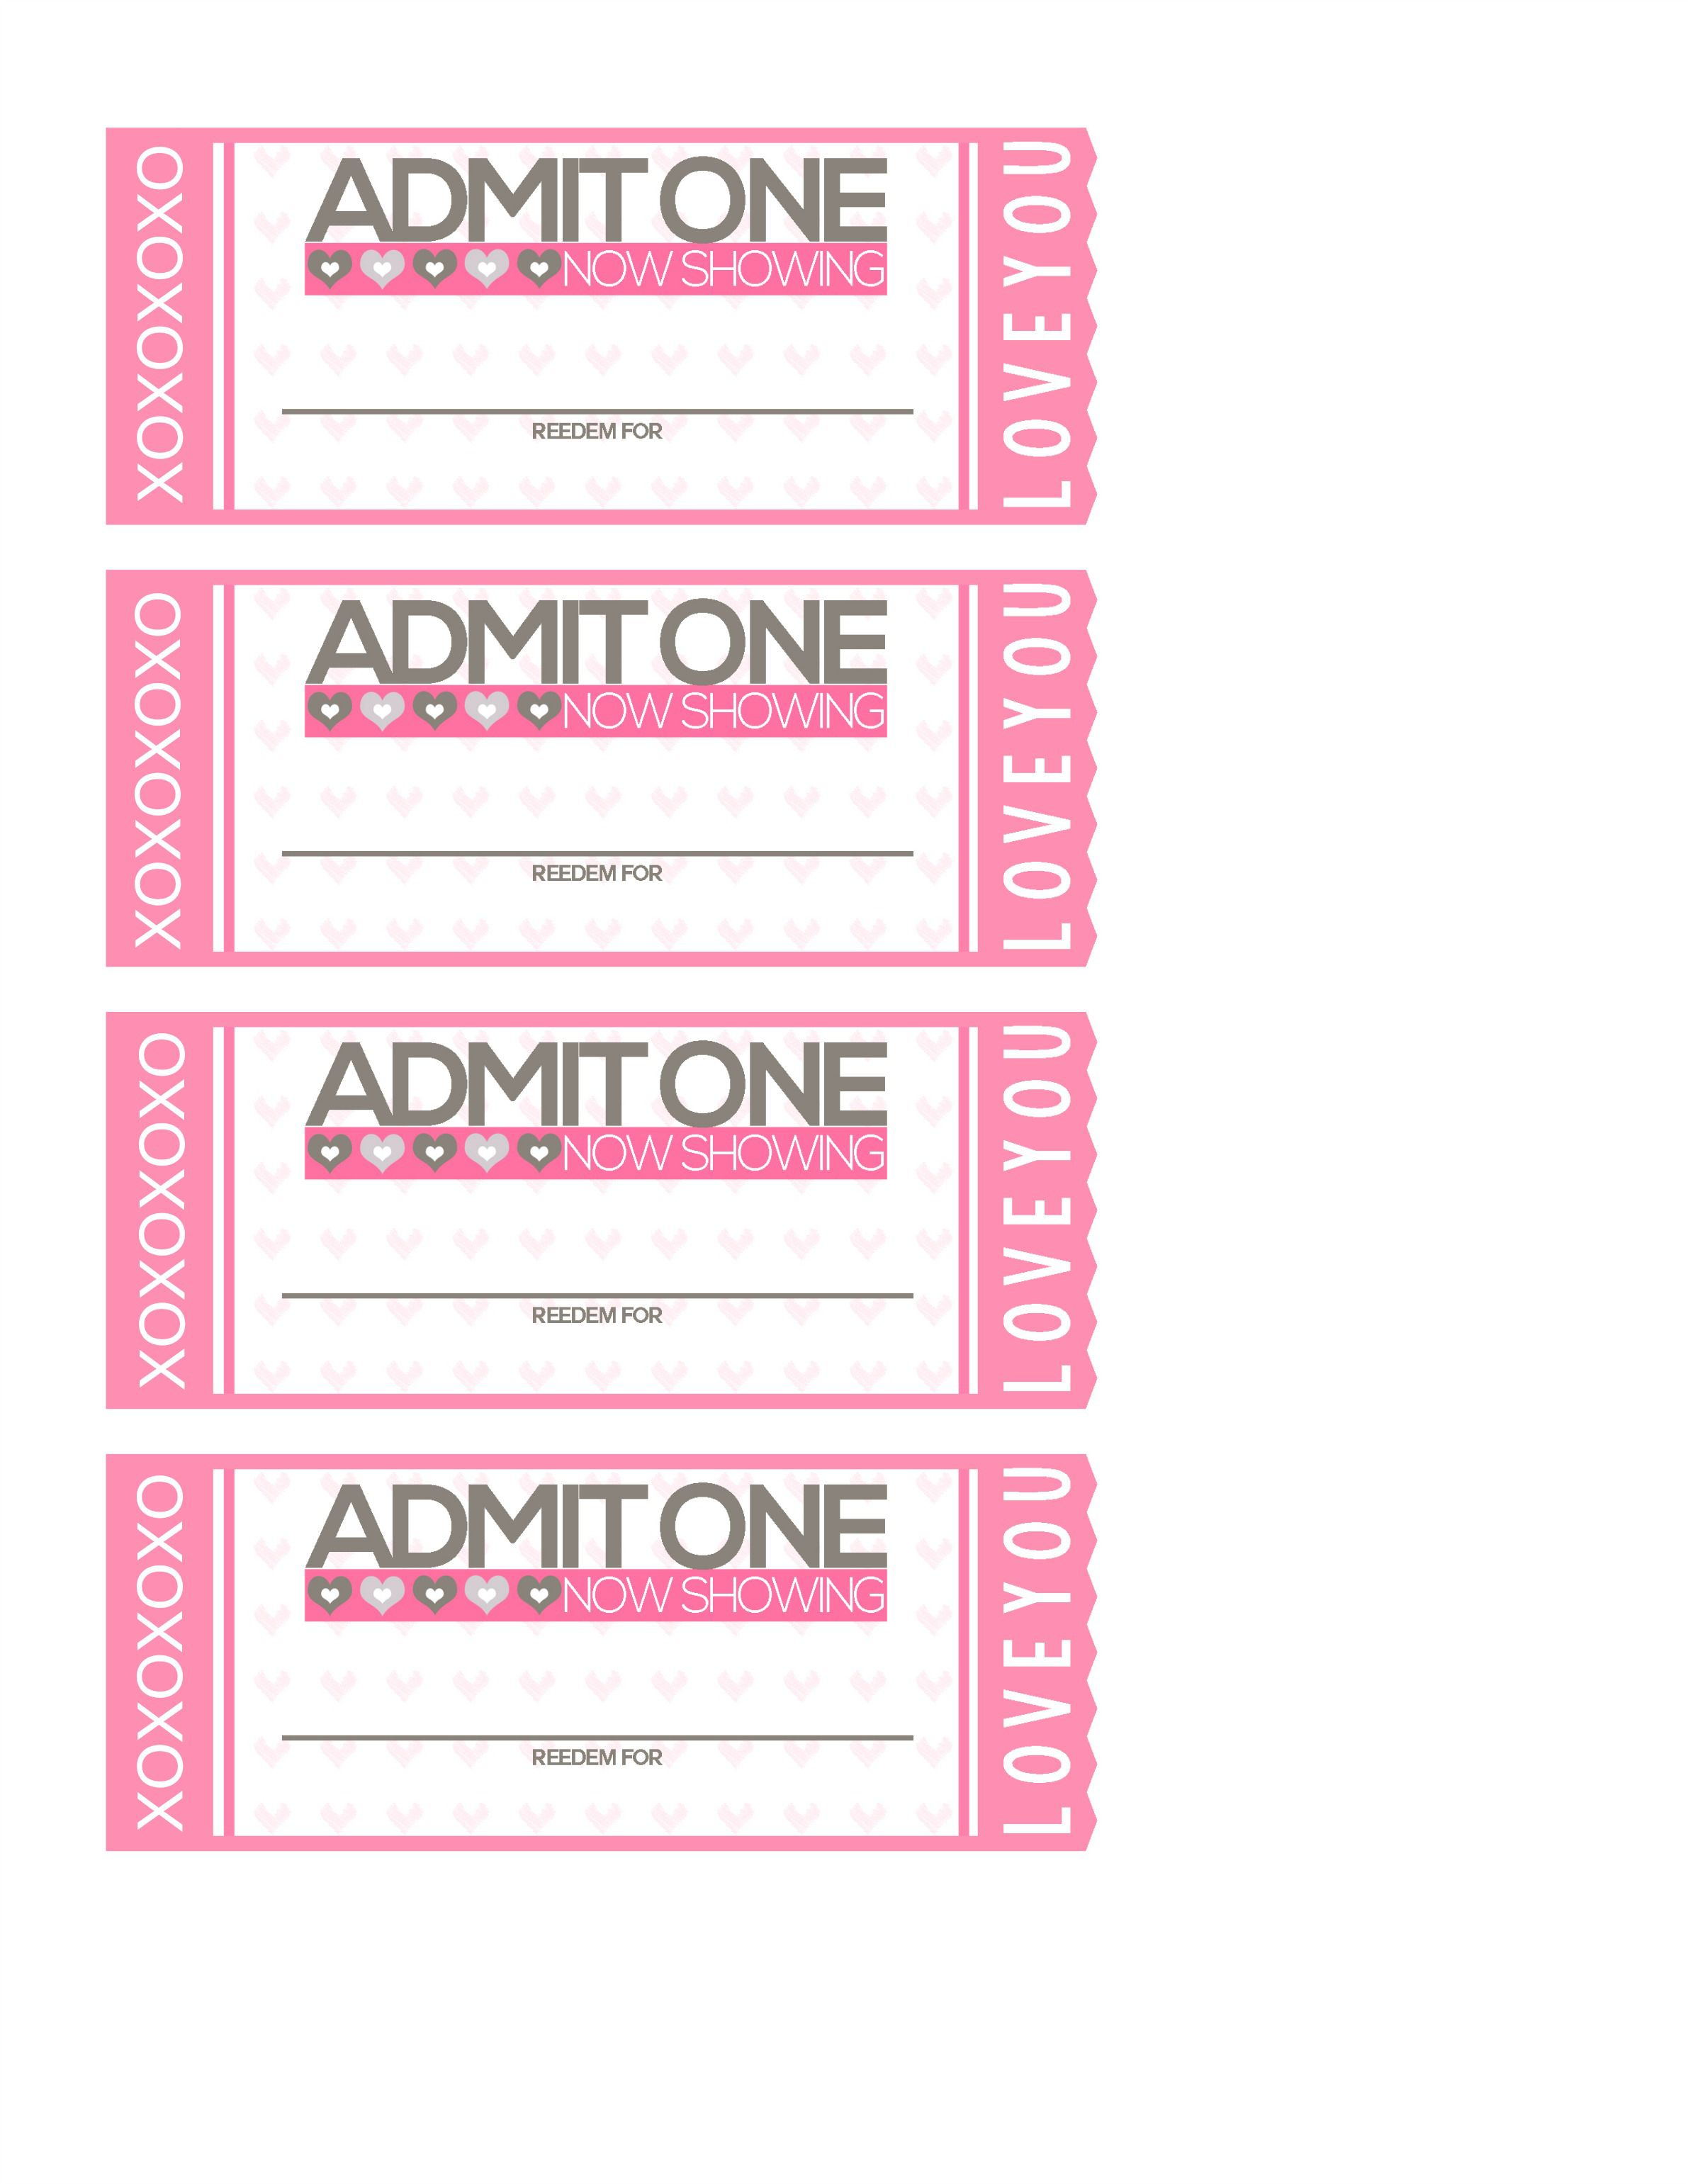 010 Striking Print Ticket Free Template Image  Your OwnFull